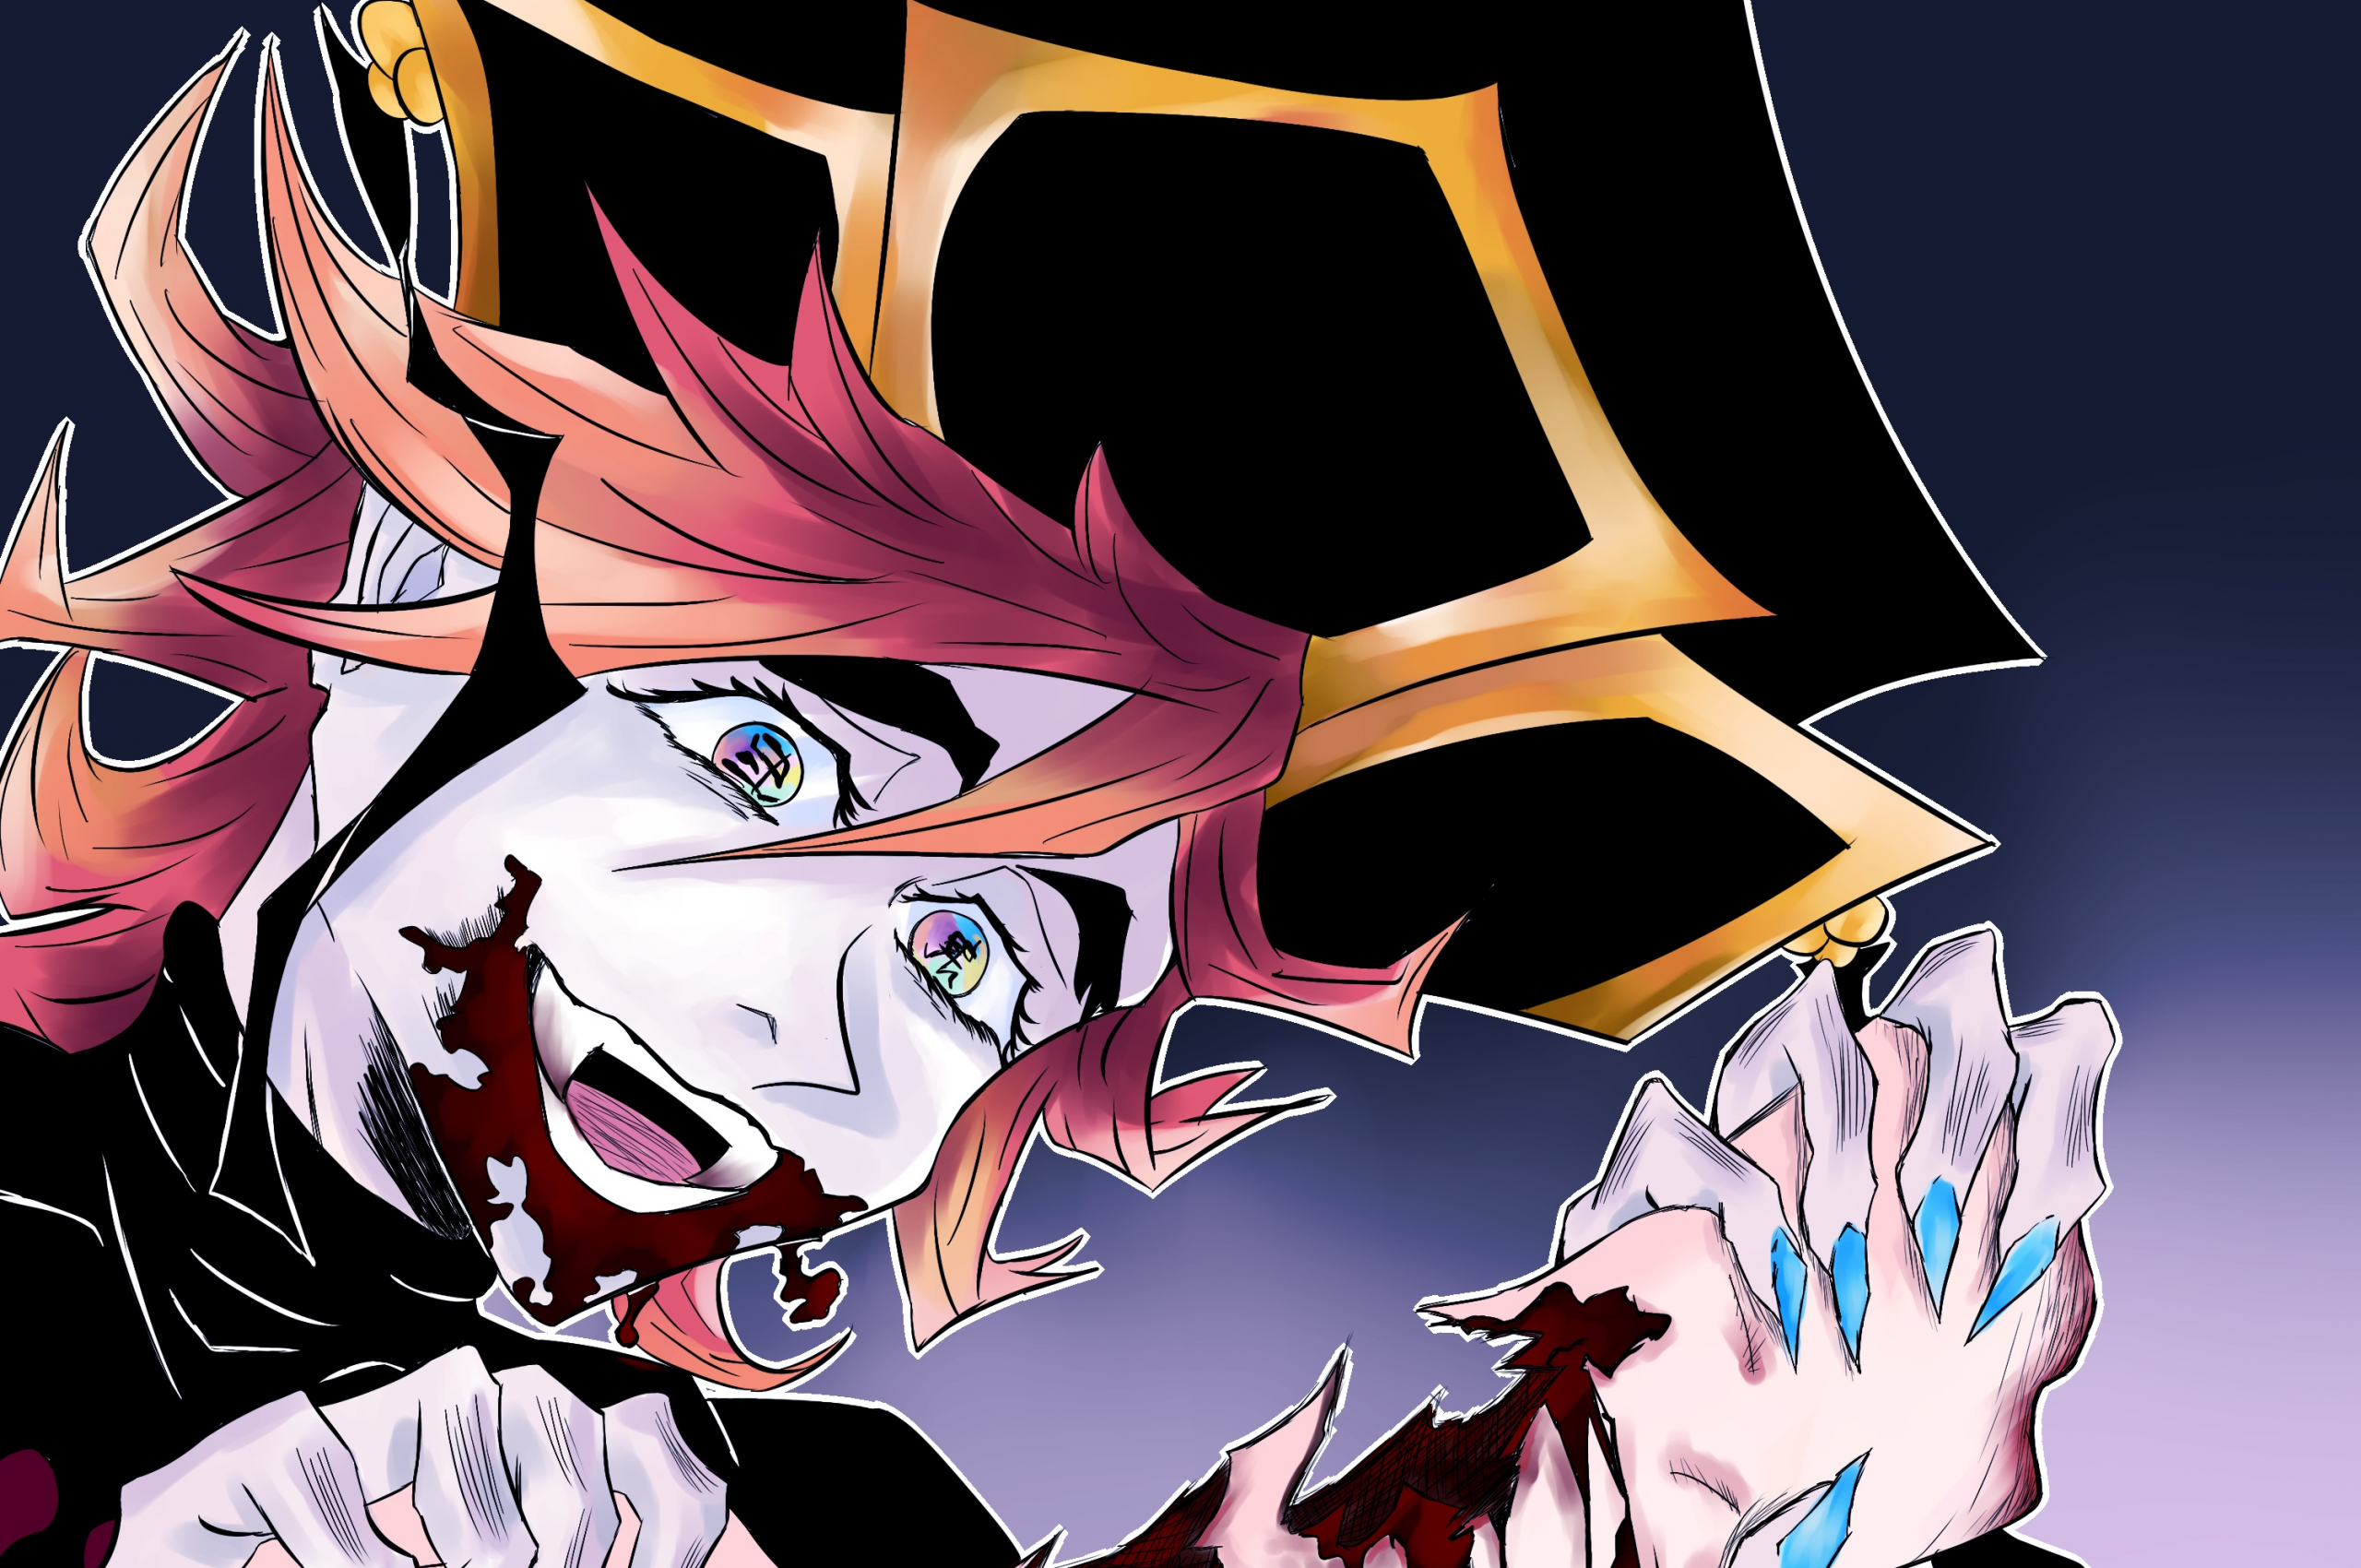 Free Download Demon Slayer Kimetsu No Yaiba Hd Wallpaper